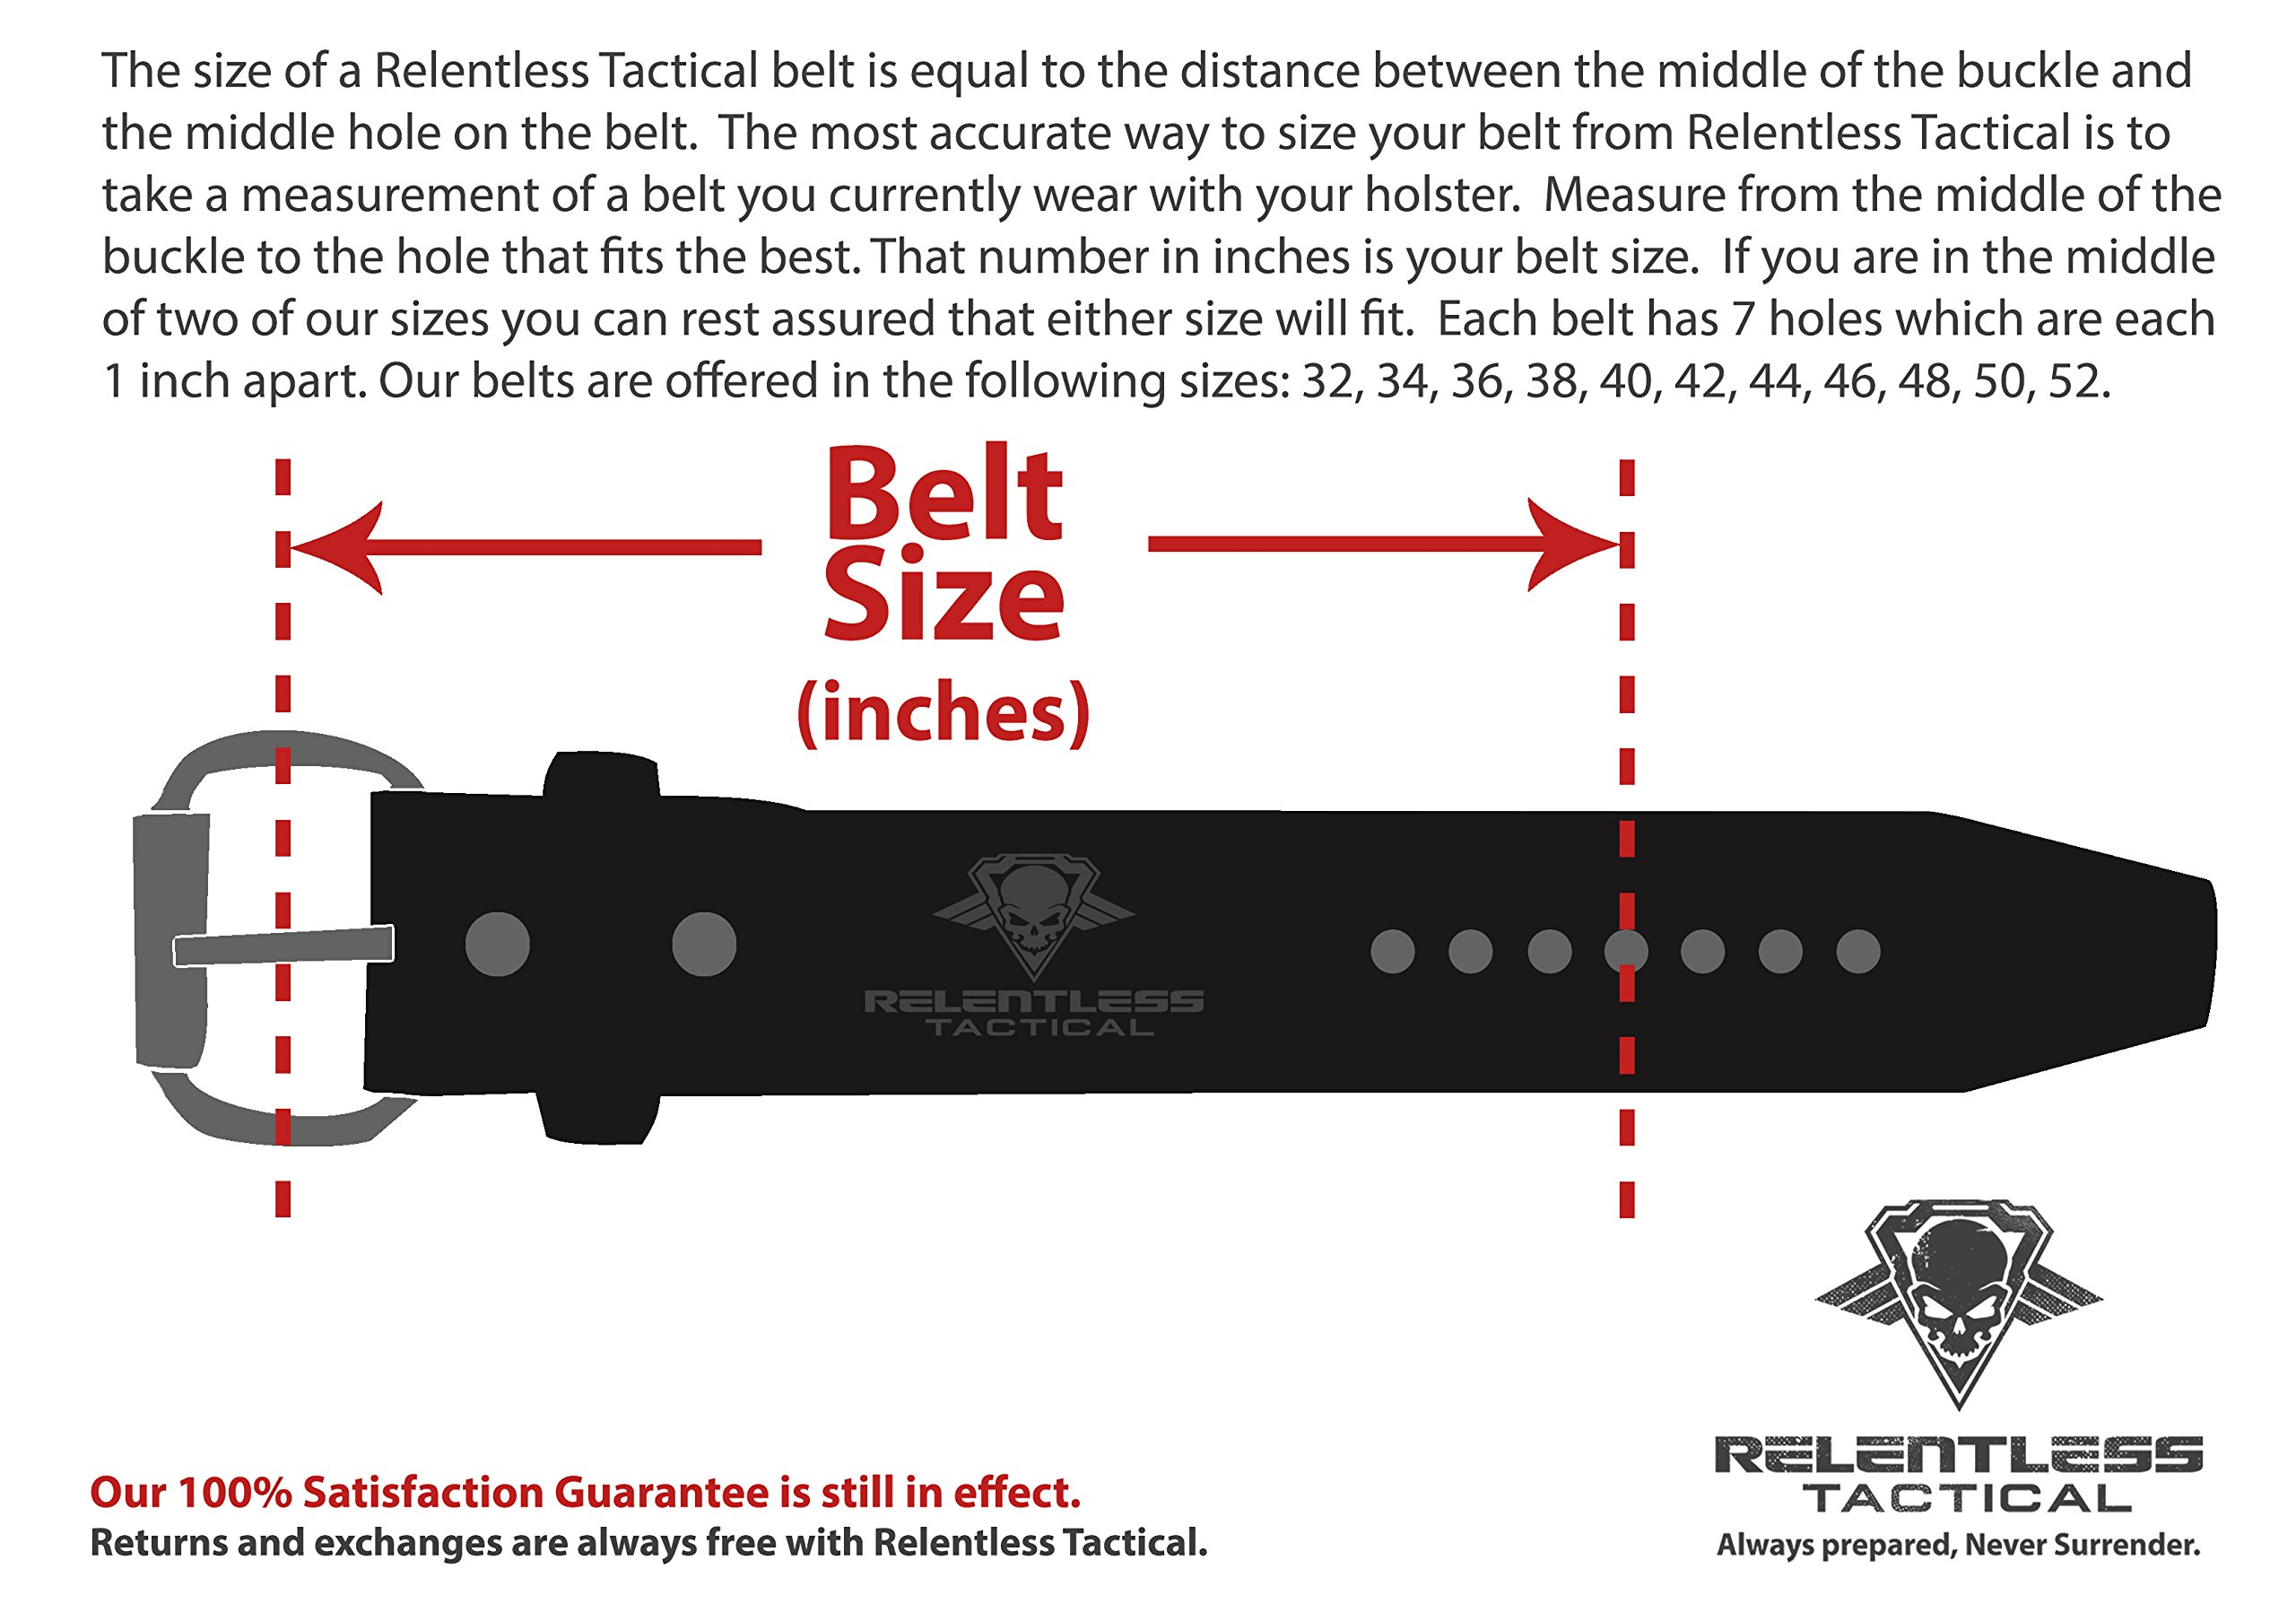 Relentless Tactical The Ultimate Concealed Carry CCW Leather Gun Belt - Basket Weave Pattern -1 1/2 inch Premium Full Grain Leather Belt - Handmade in The USA! Black Size 34 by Relentless Tactical (Image #6)